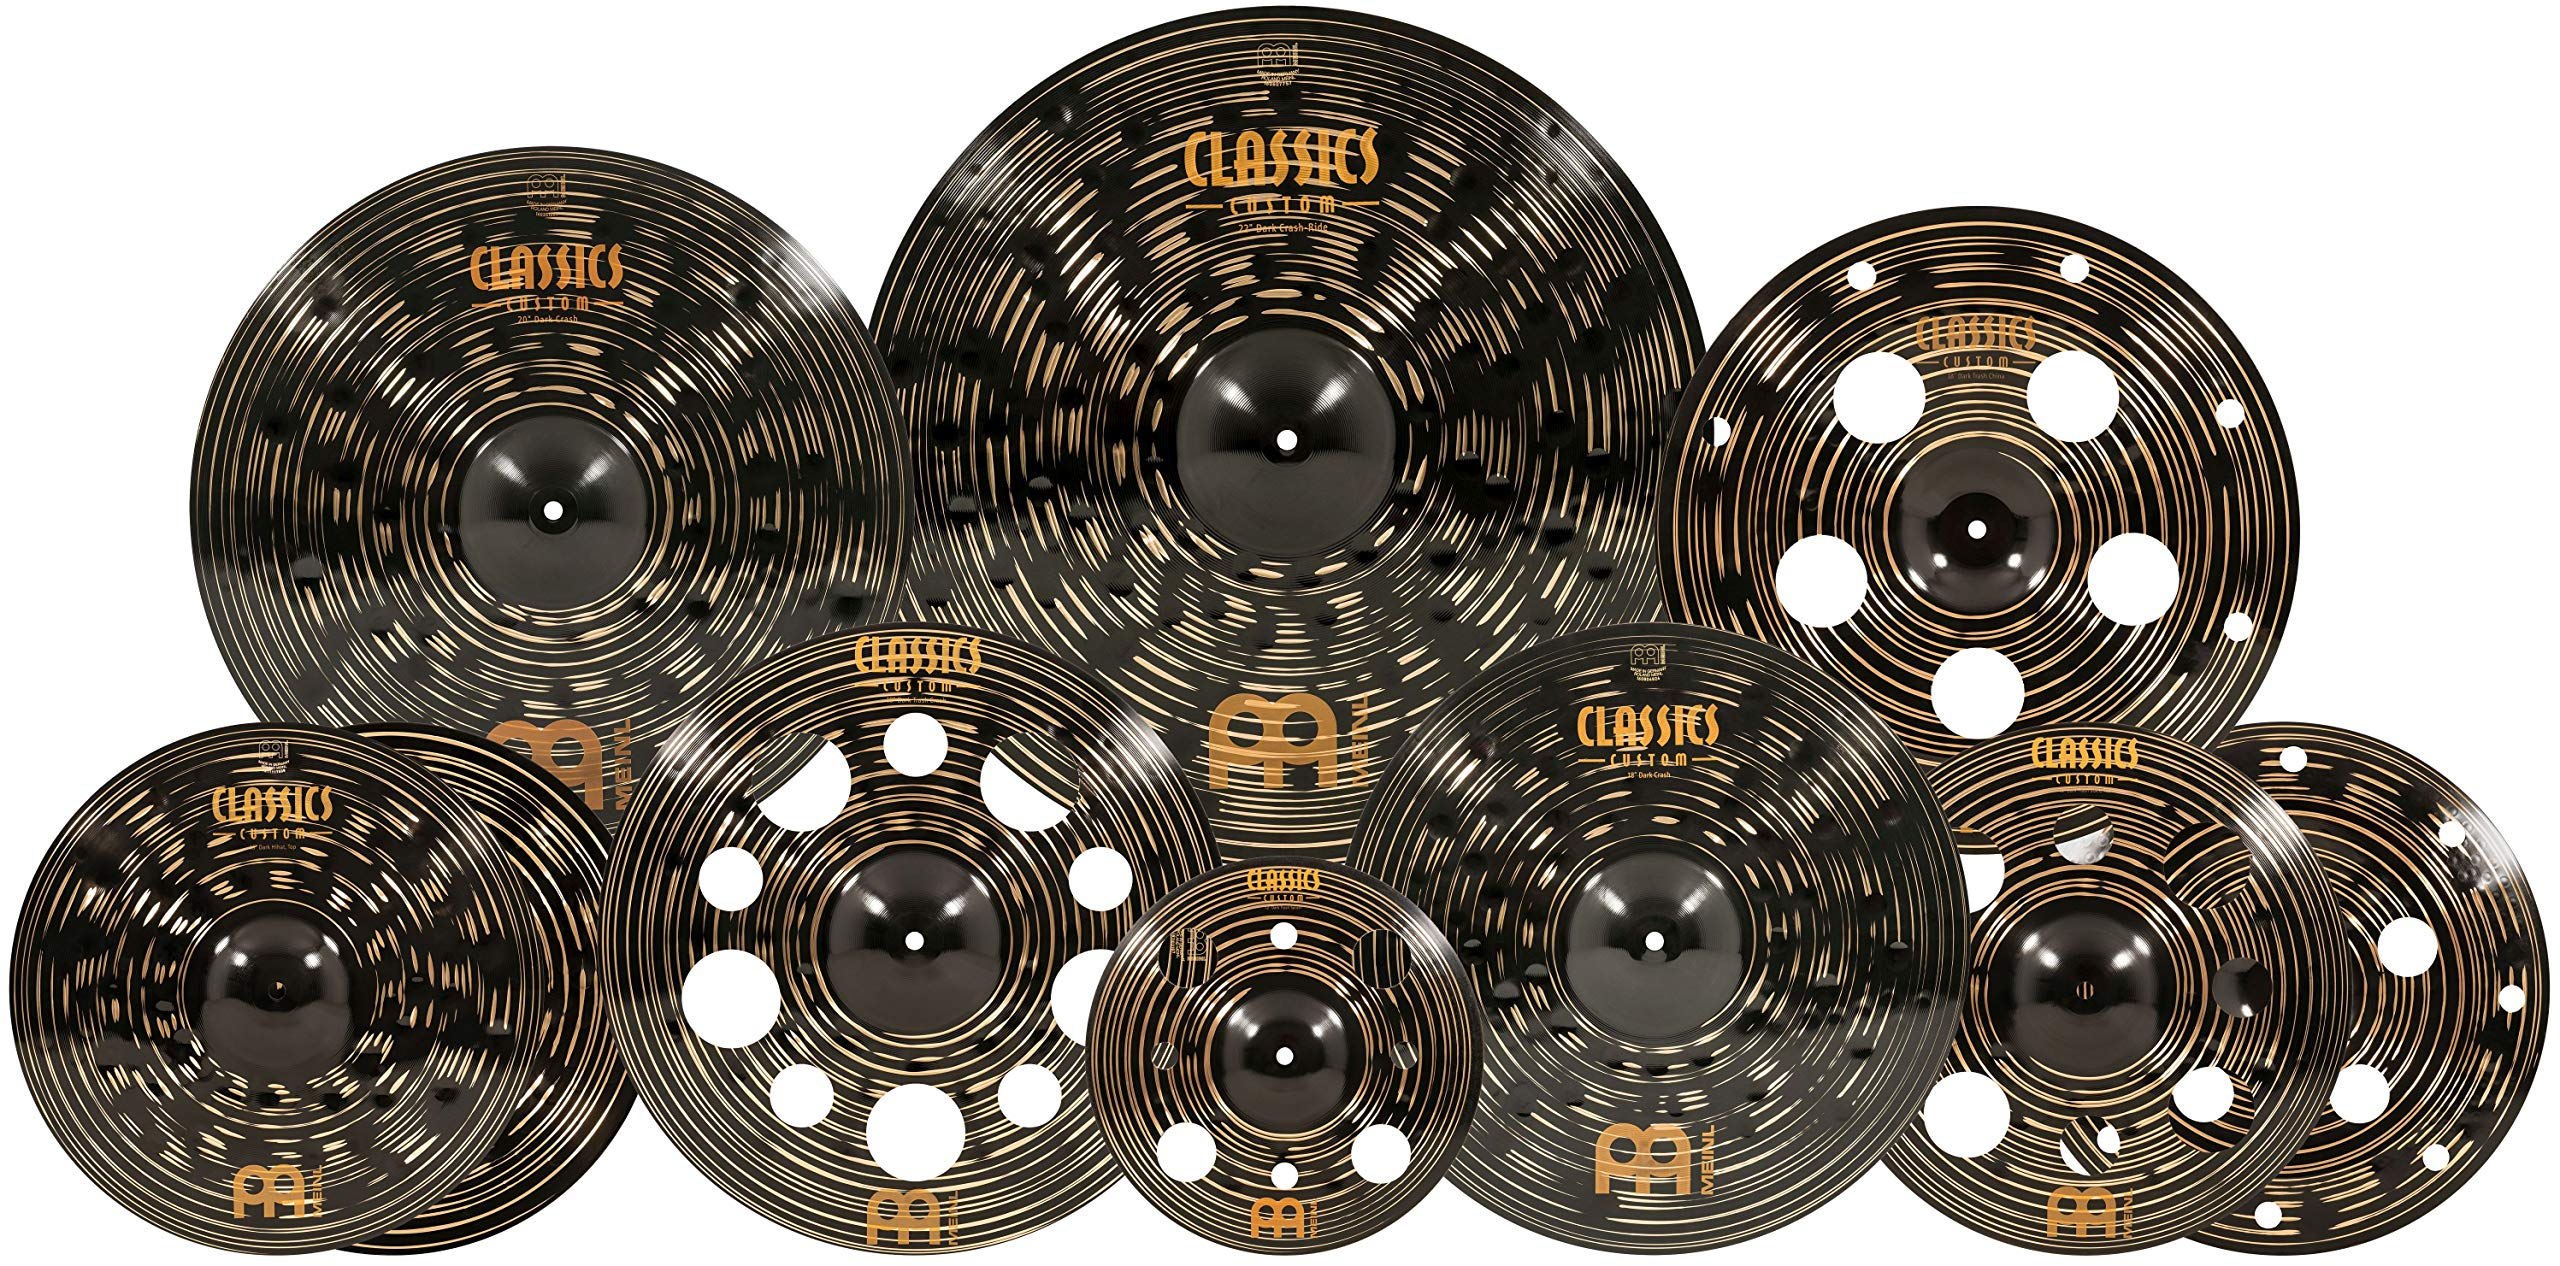 Meinl Cymbals Cymbal Set Hihats, 22 Ride, 20 China, 16 Stack, Plus a Free 18 Crash and 12'' Trash Splash - Classics Custom Dark - Made in Germany, Two-Year Warranty, Ultimate (CCD-ES2) by Meinl Cymbals